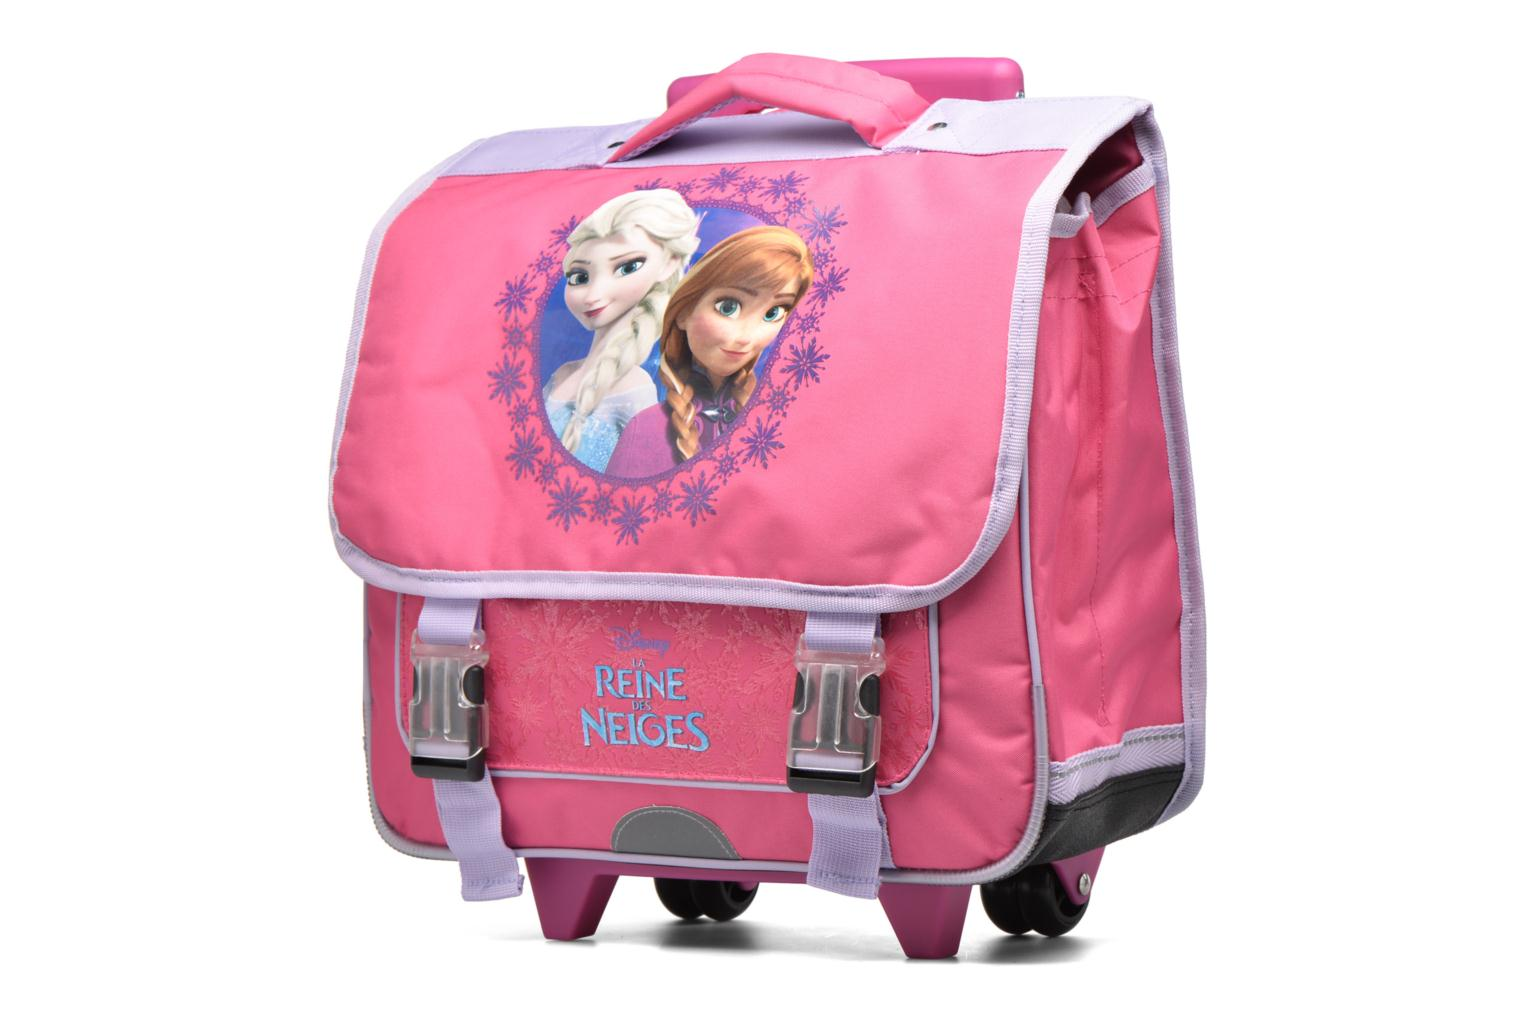 Cartable 38cm Trolley Reine des neiges - Rose